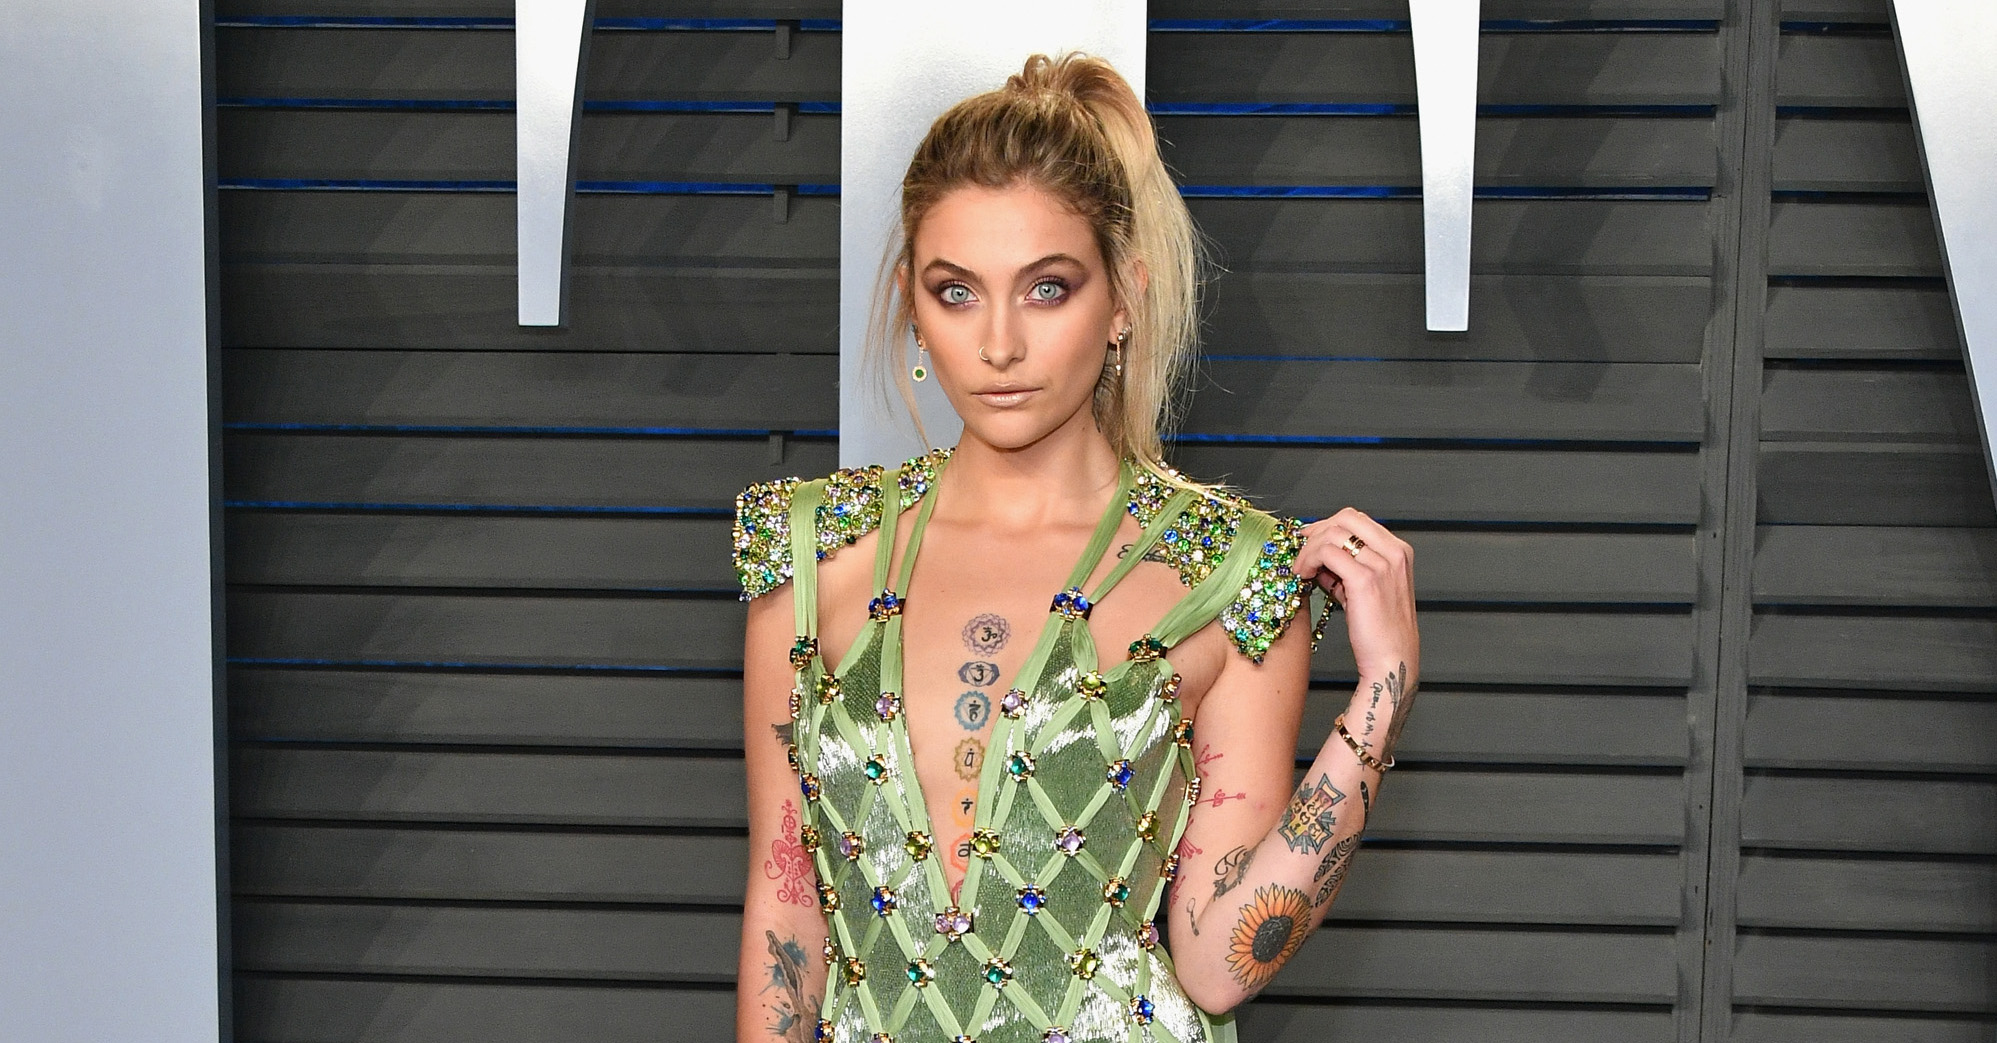 Paris-Jackson-Says-She-Came-Out-When-She-Was-14-In-A-Flurry-Of-Tweets